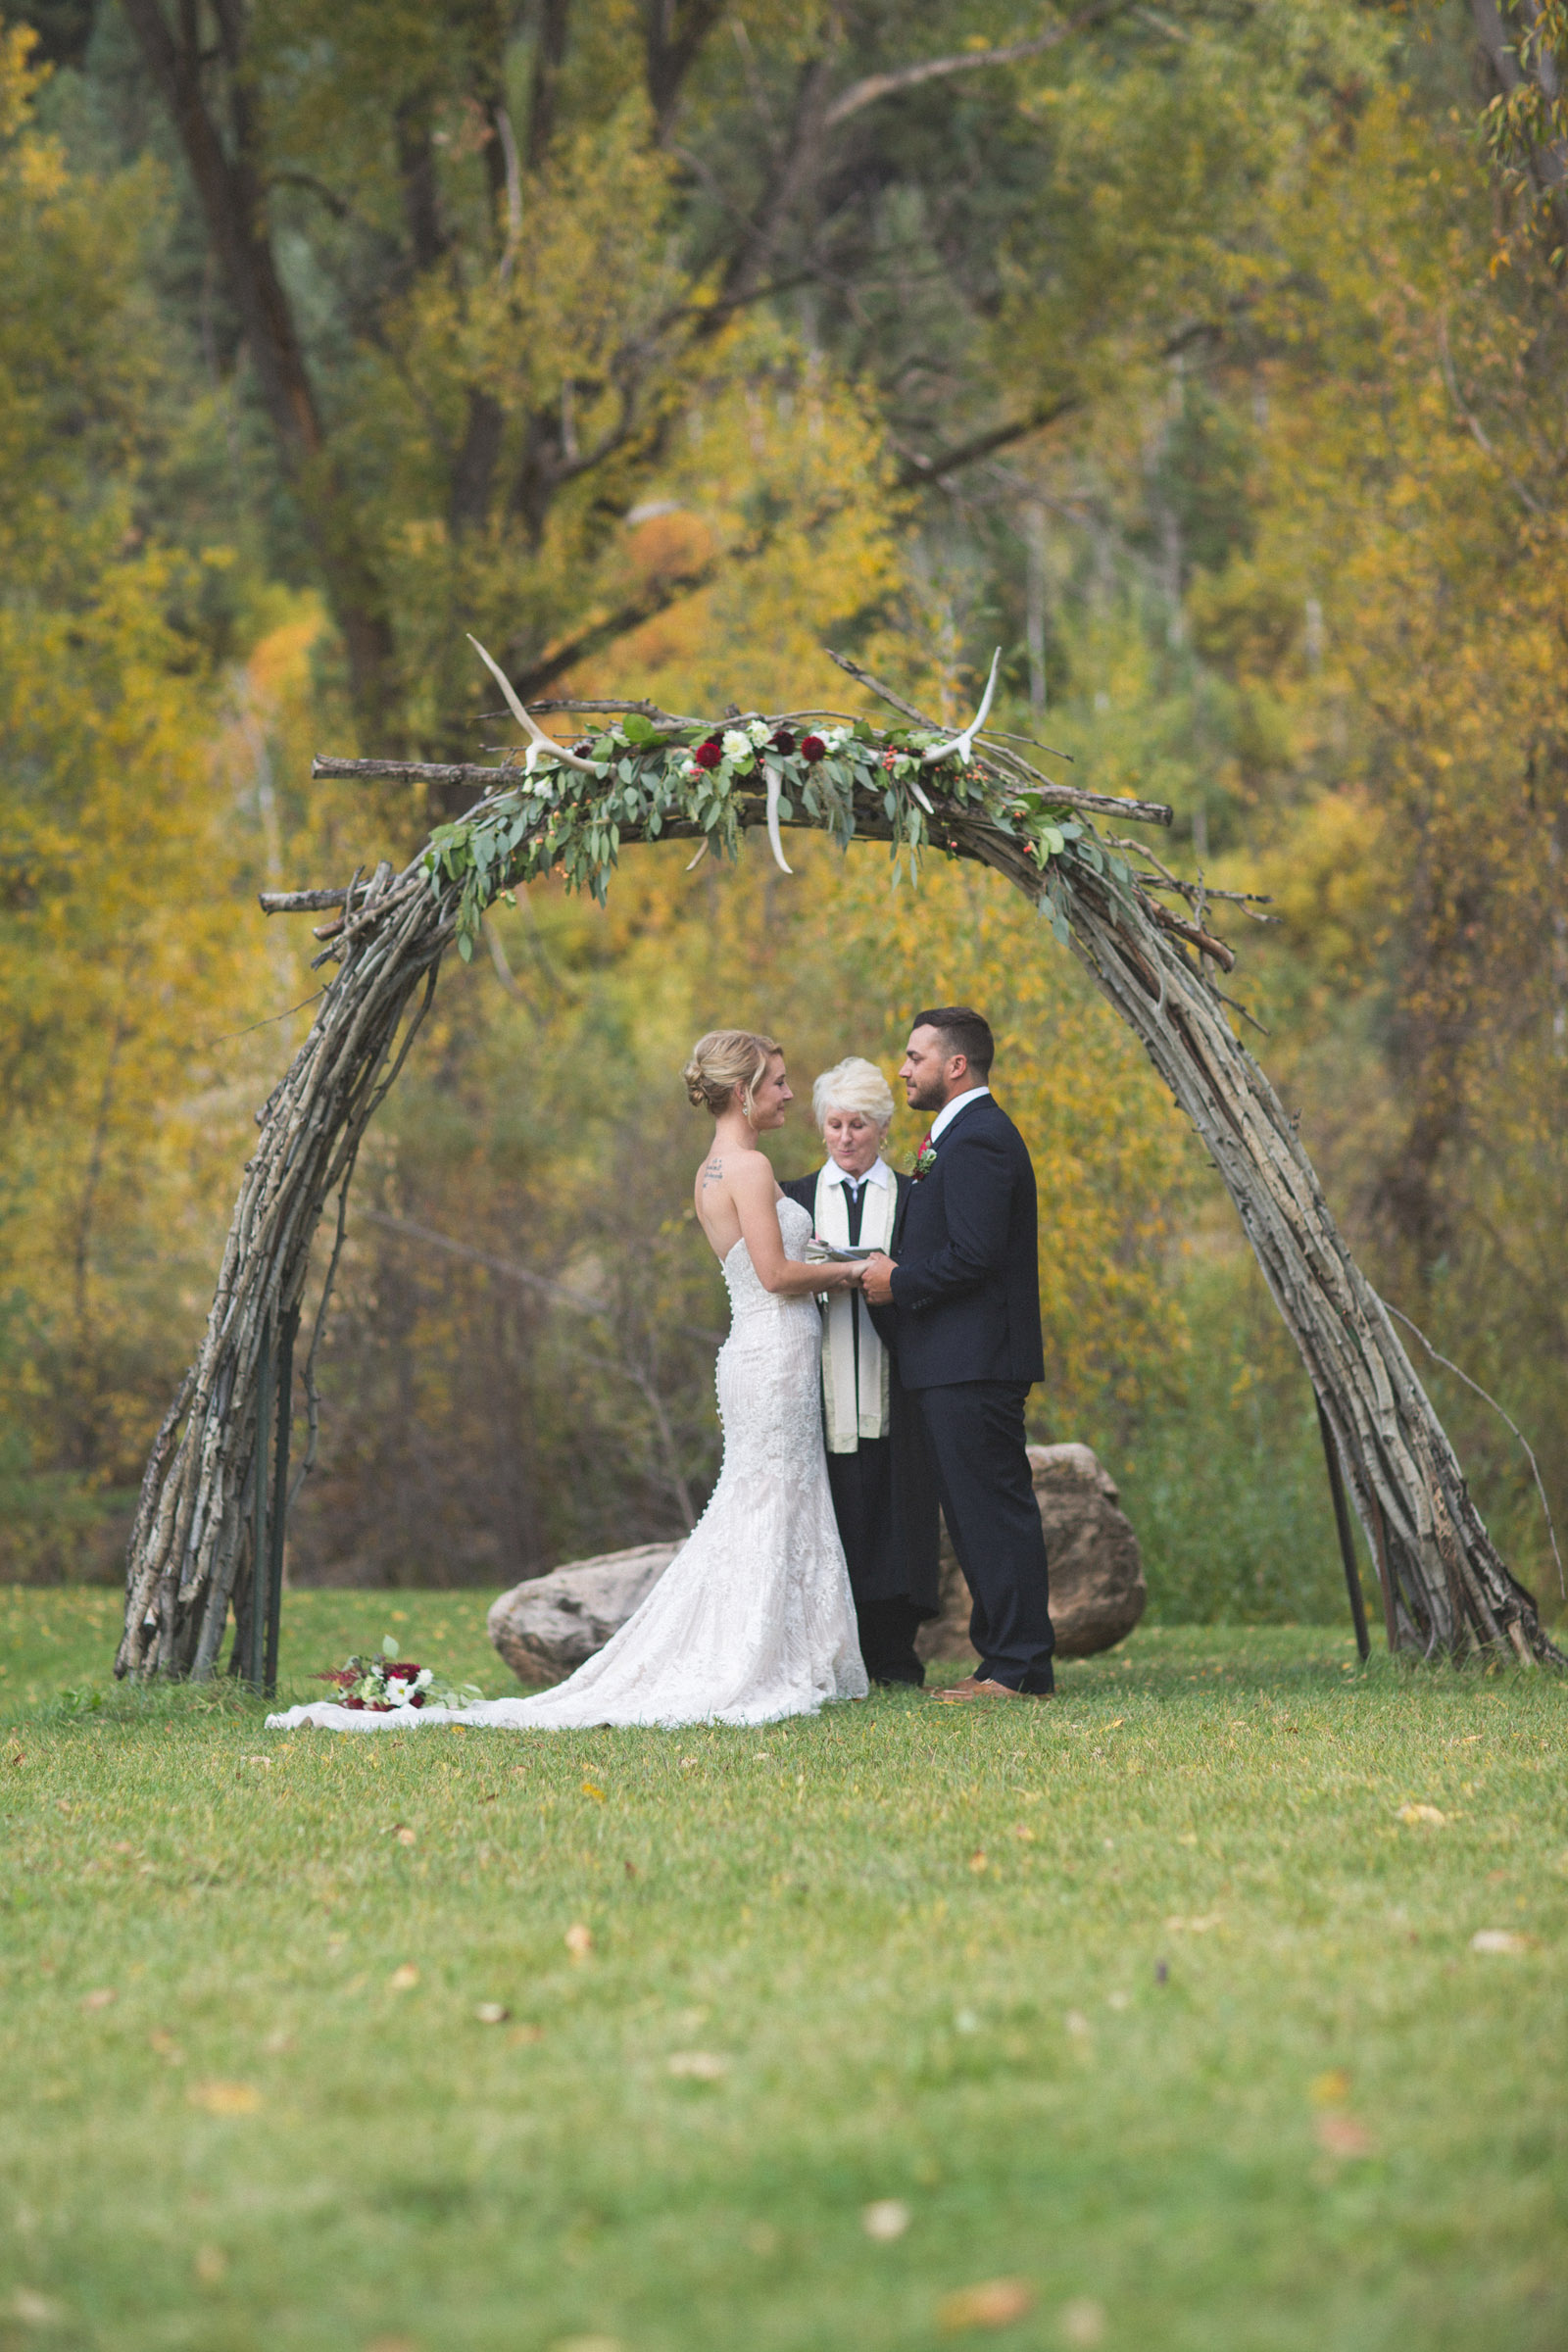 069-bride-and-groom-during-private-elopement-wedding-ceremony-in-durango-co-forest